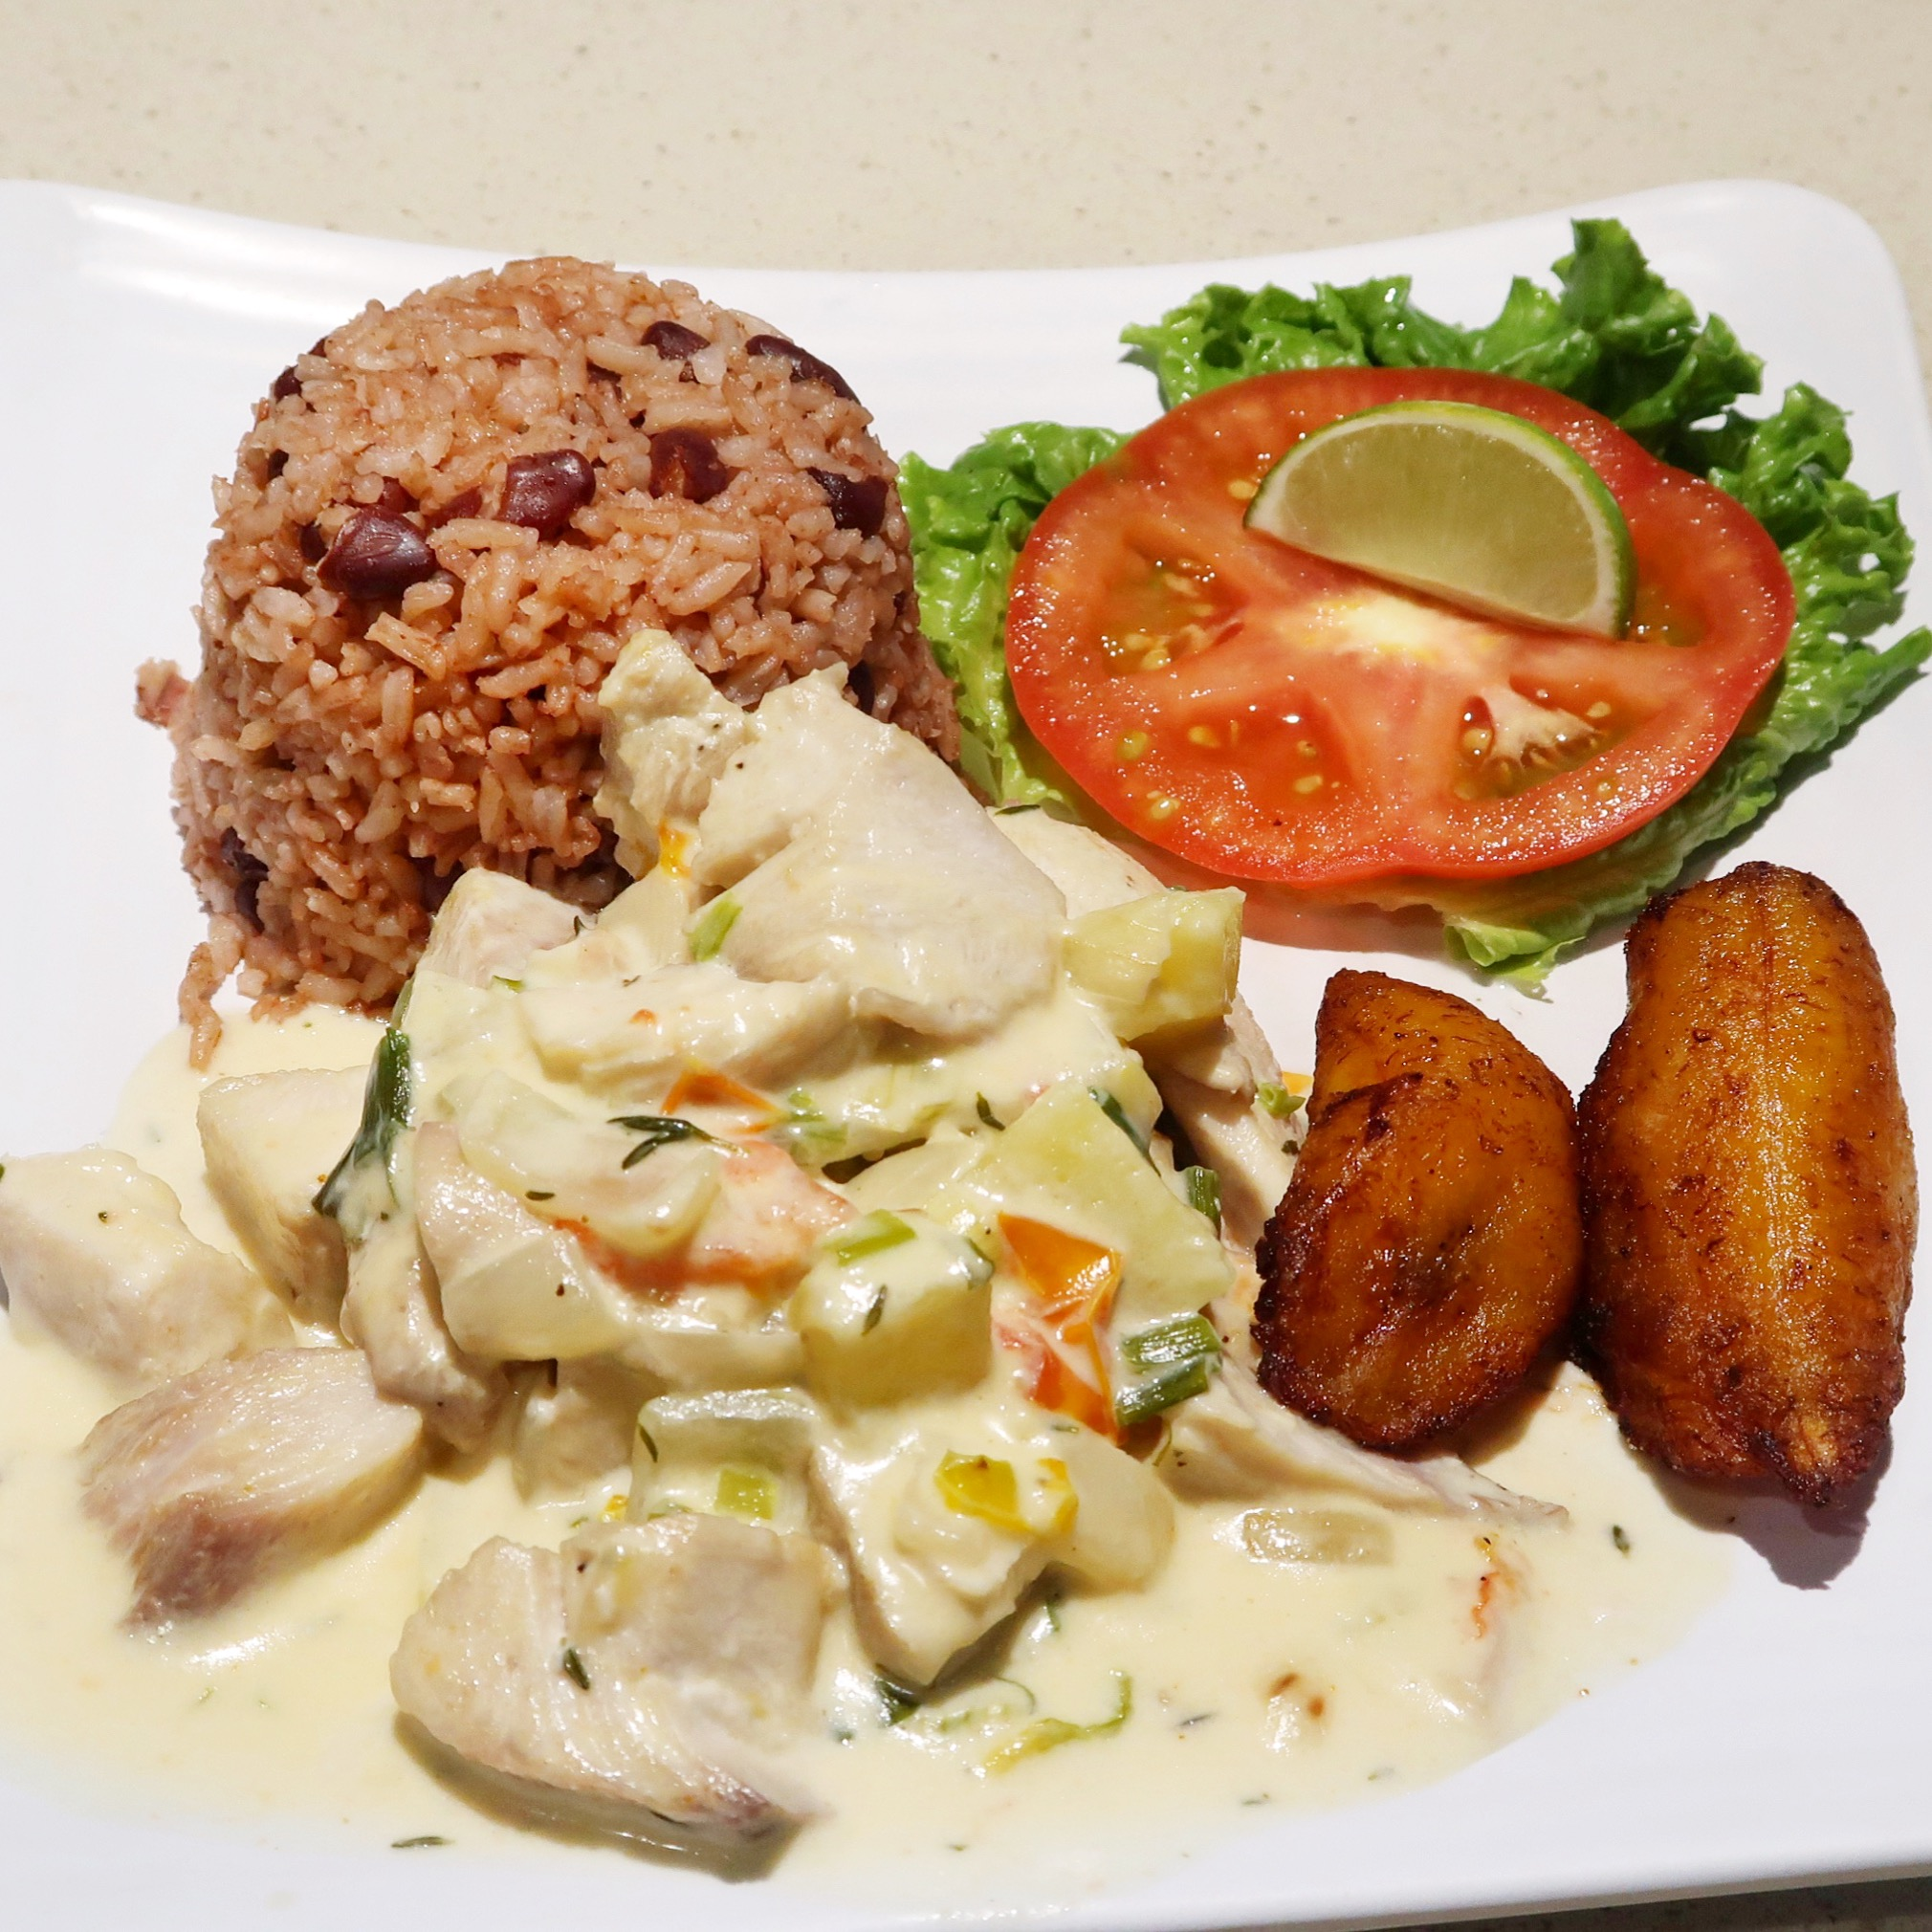 The Coconut Rundown is rich and saucy. Fresh mahi mahi is cooked down with veggies and coconut milk and served with your choice of sides. I think it goes well with their rice & beans and fried plantain.